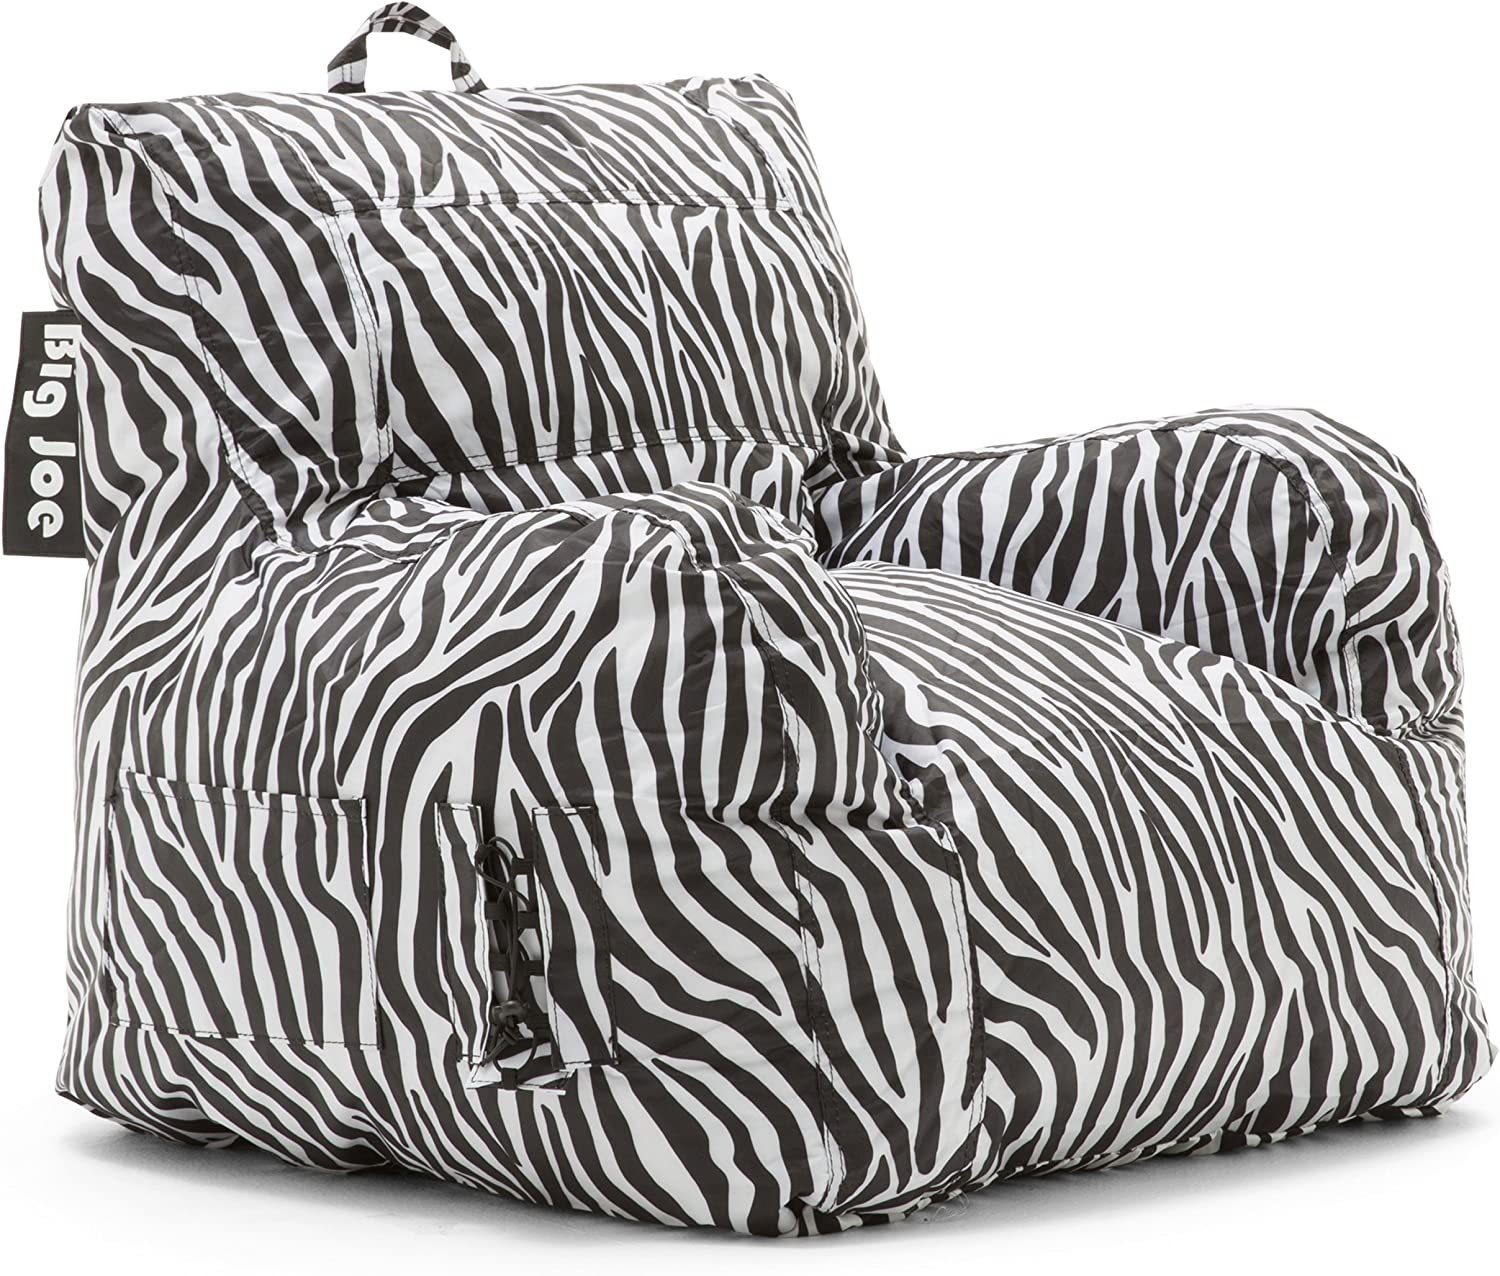 BIG JOE 645185 dorm bean bag chair